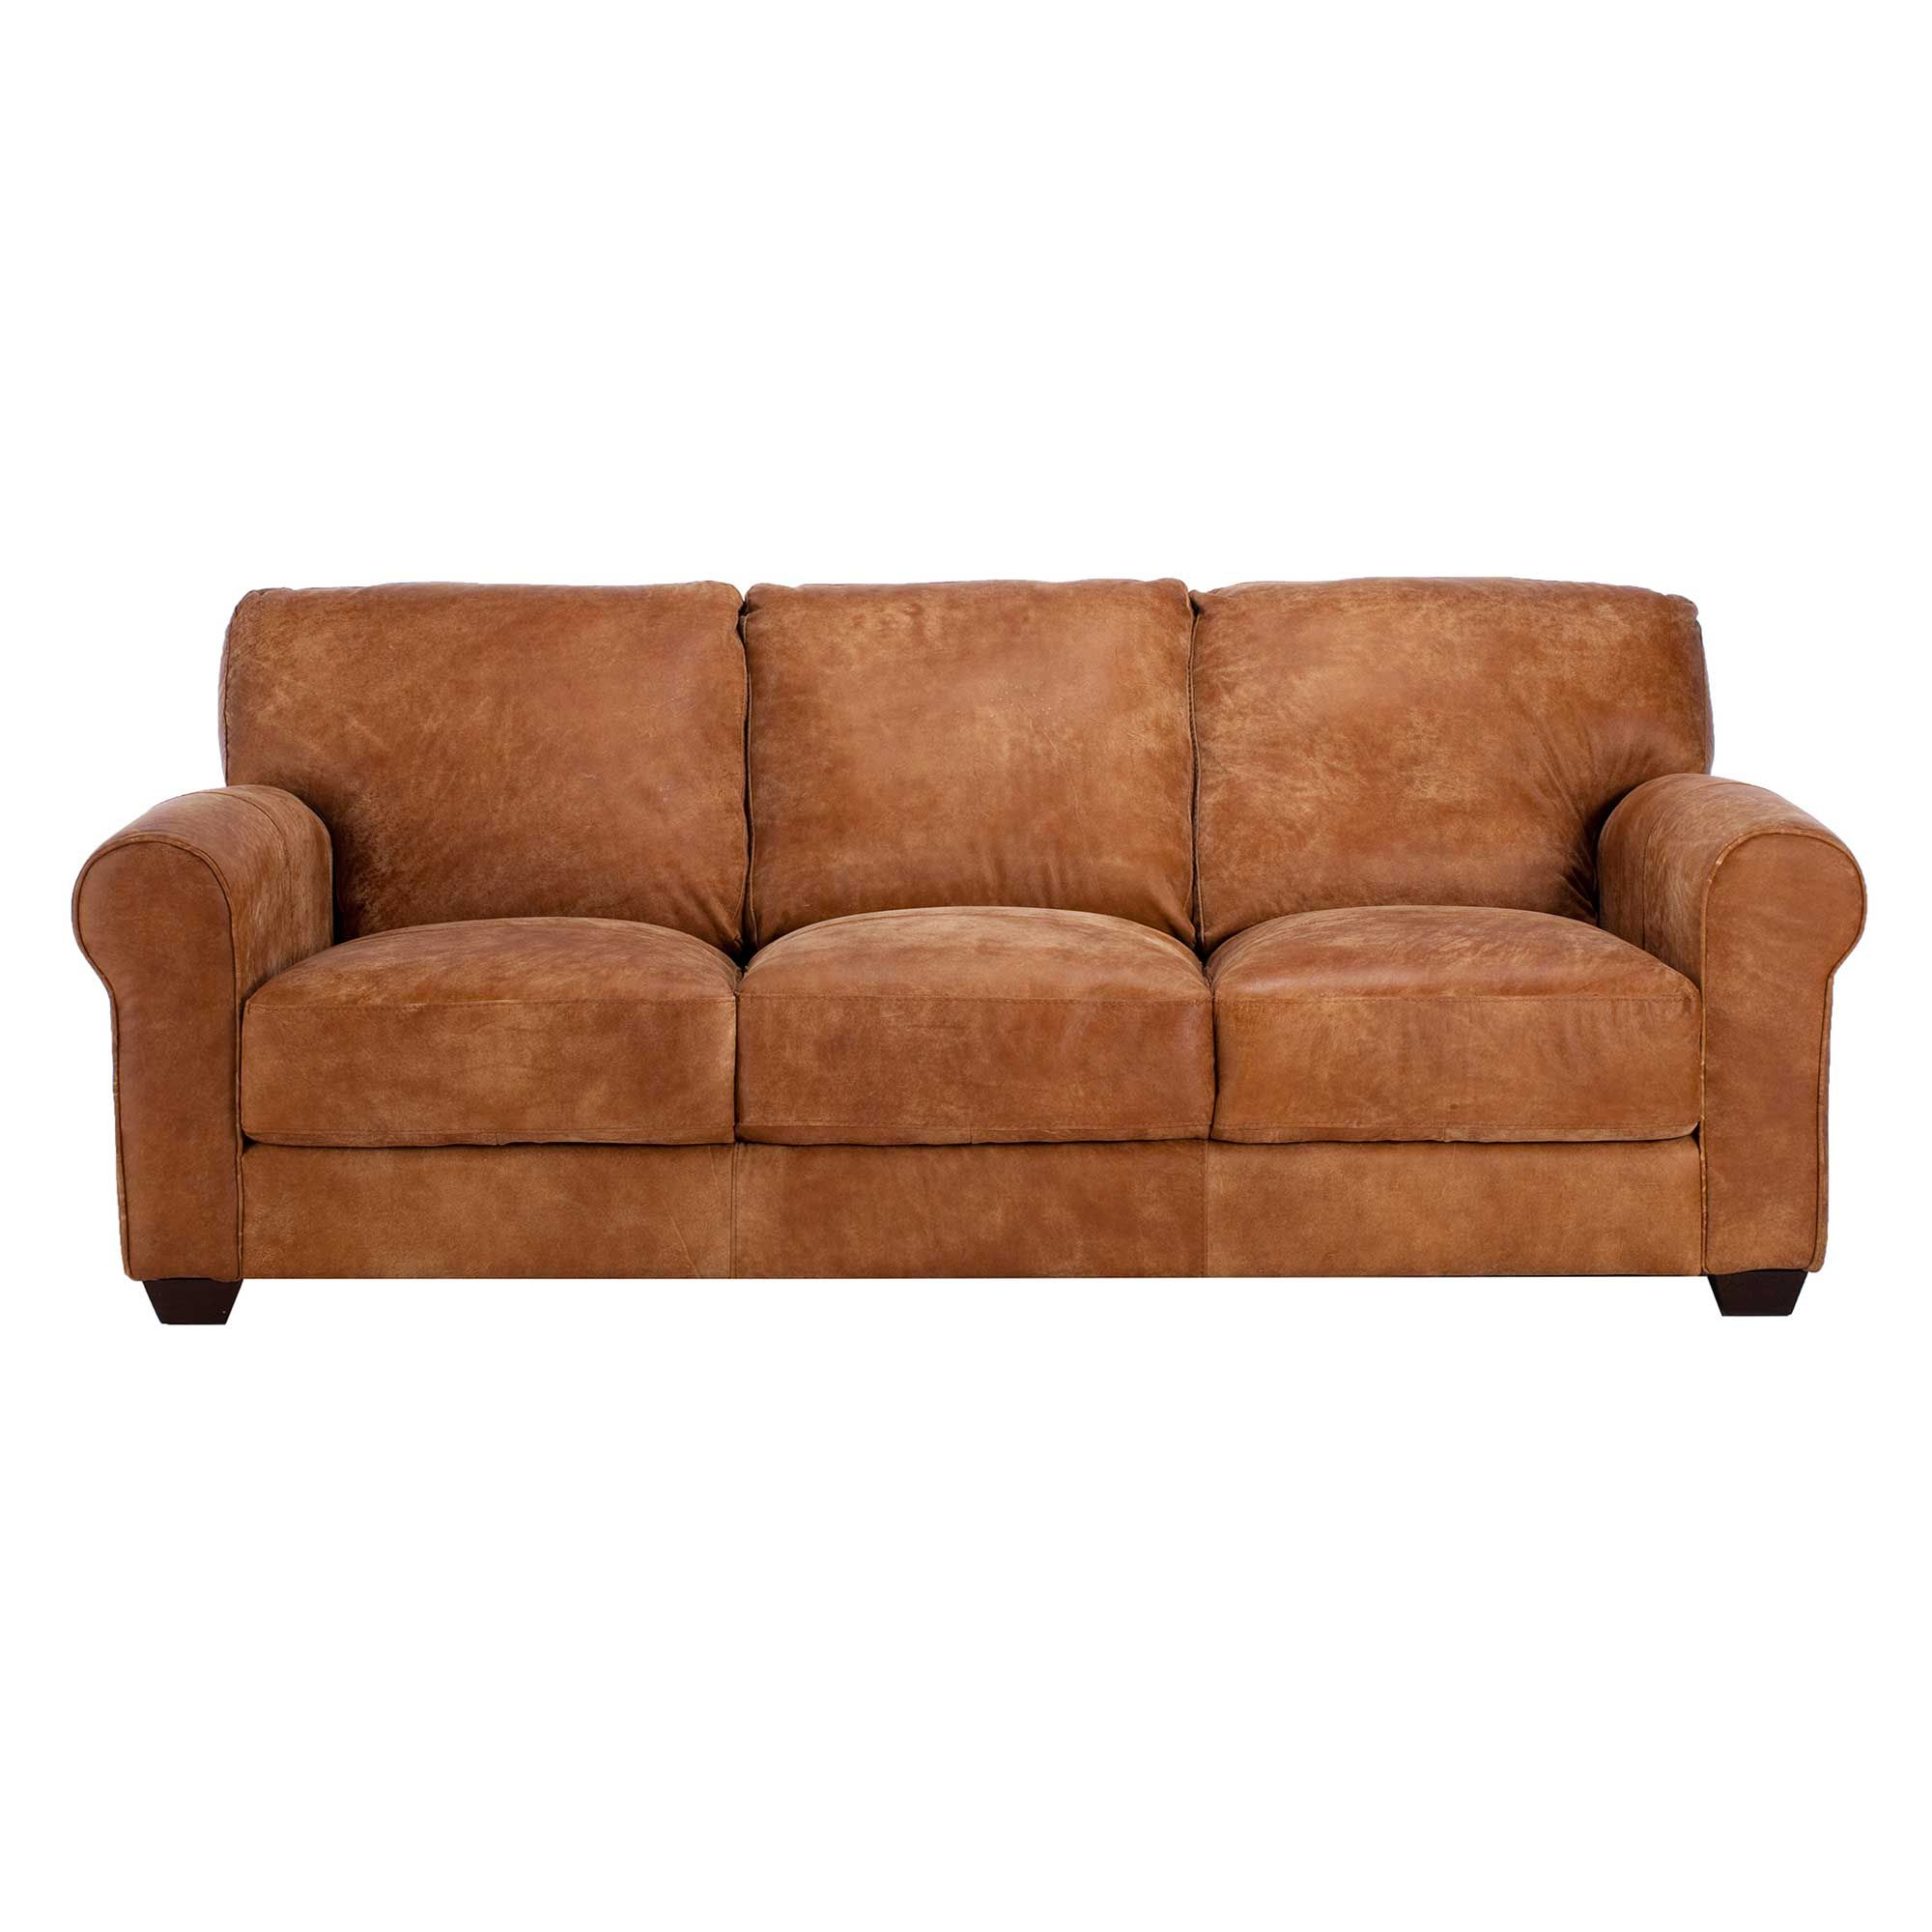 Houston Leather 3 Seater Sofa